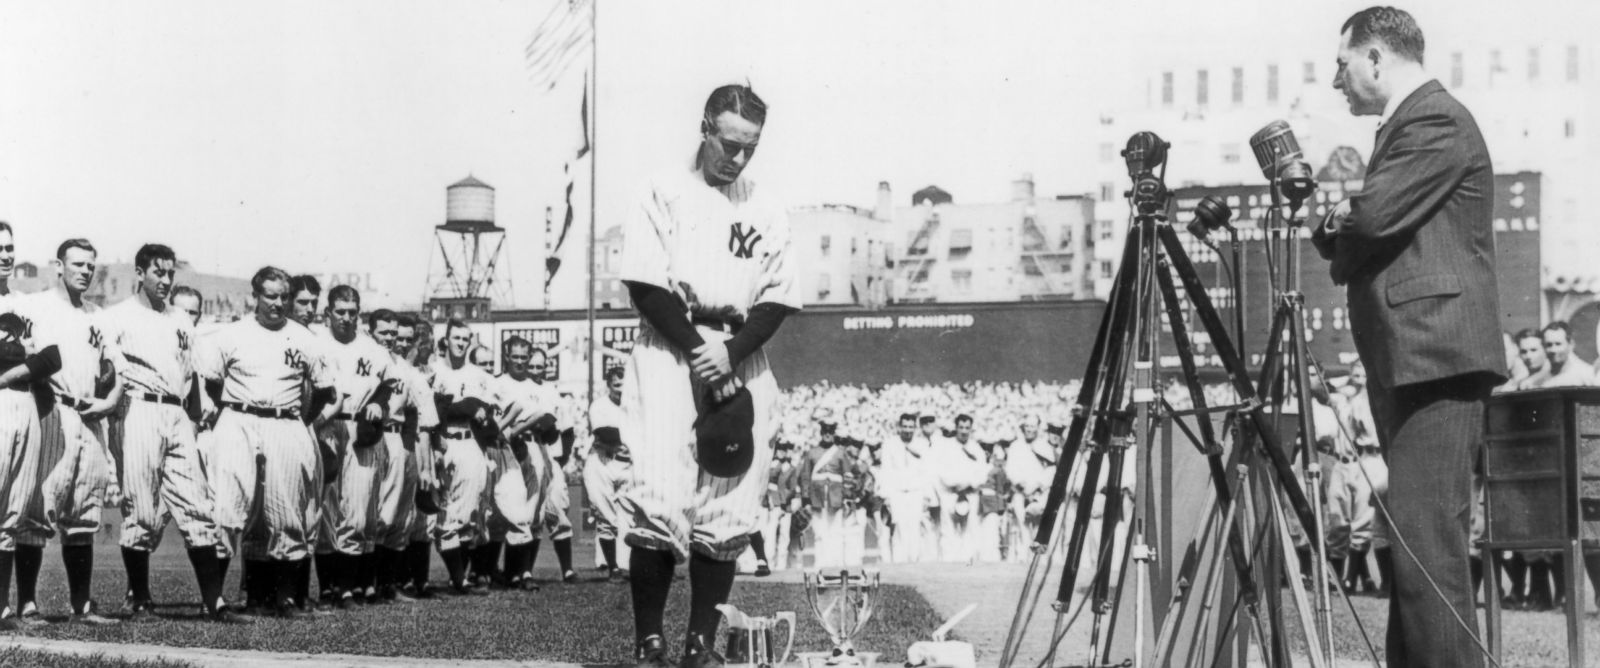 PHOTO: Lou Gehrig, first baseman for the New York Yankees, is shown at the microphone during Lou Gehrig Appreciation Day, a farewell to the slugger, at Yankee Stadium, July 4, 1939.